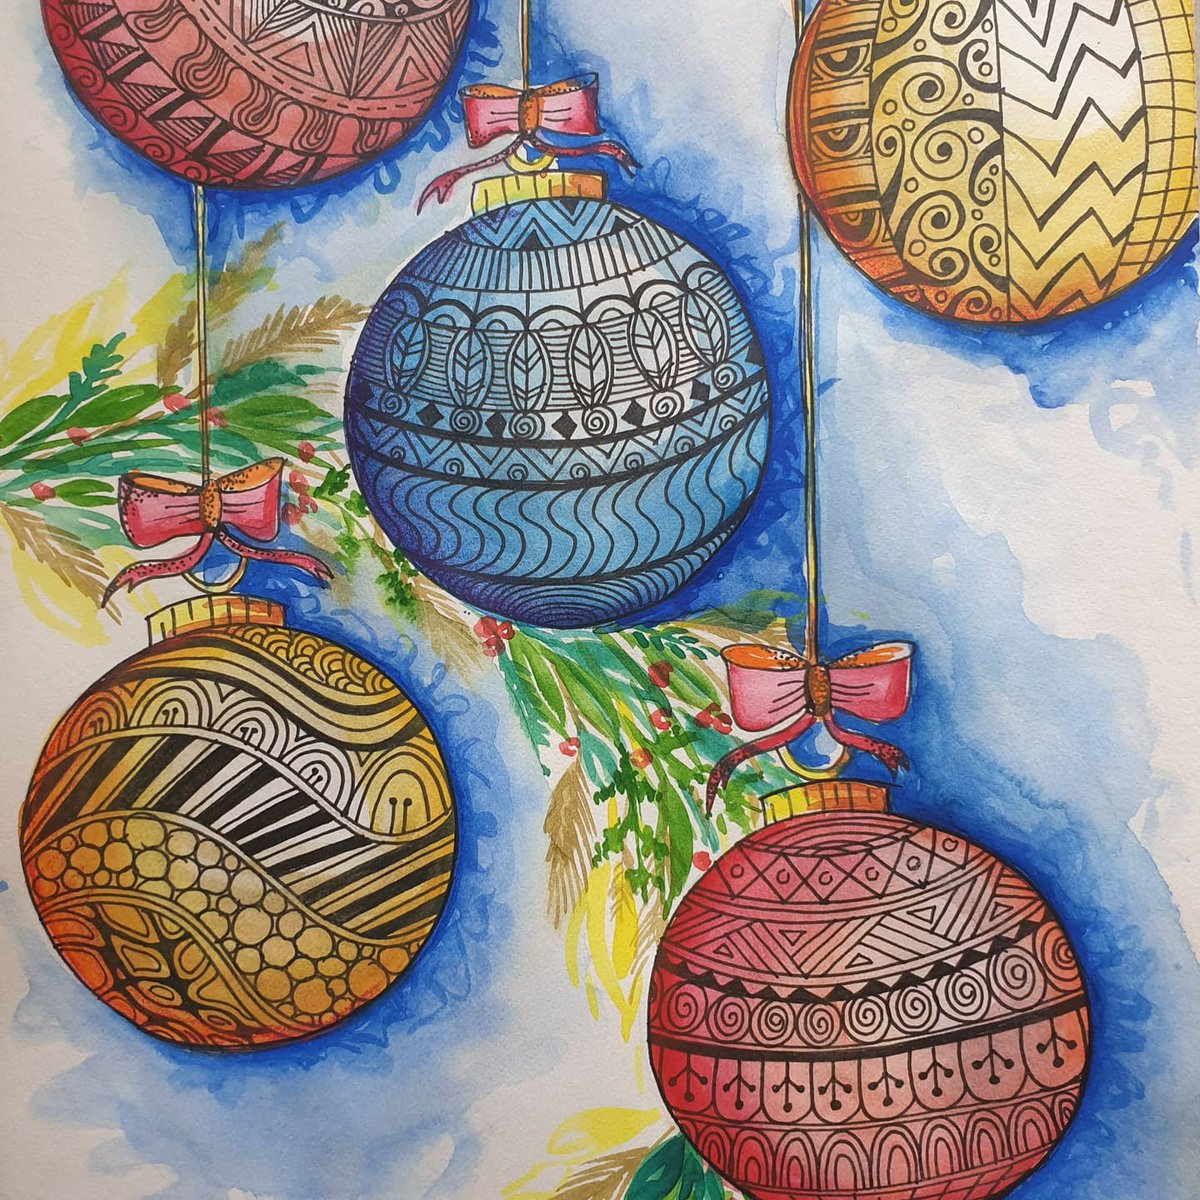 Seasons Greetings ..Wishing peace, joy, hope and welfare for all.  Sharing Ms Kadambari and Ms Askha - DPS Bopal Art & Drawing  Teacher work.   #SeasonsGreetings  #StaffEngagement #Motivation  #Christmasiscancelled #CharismaticChristmas   #GiftOfKnowledge #Christmas2020 https://t.co/HLY962i4jT